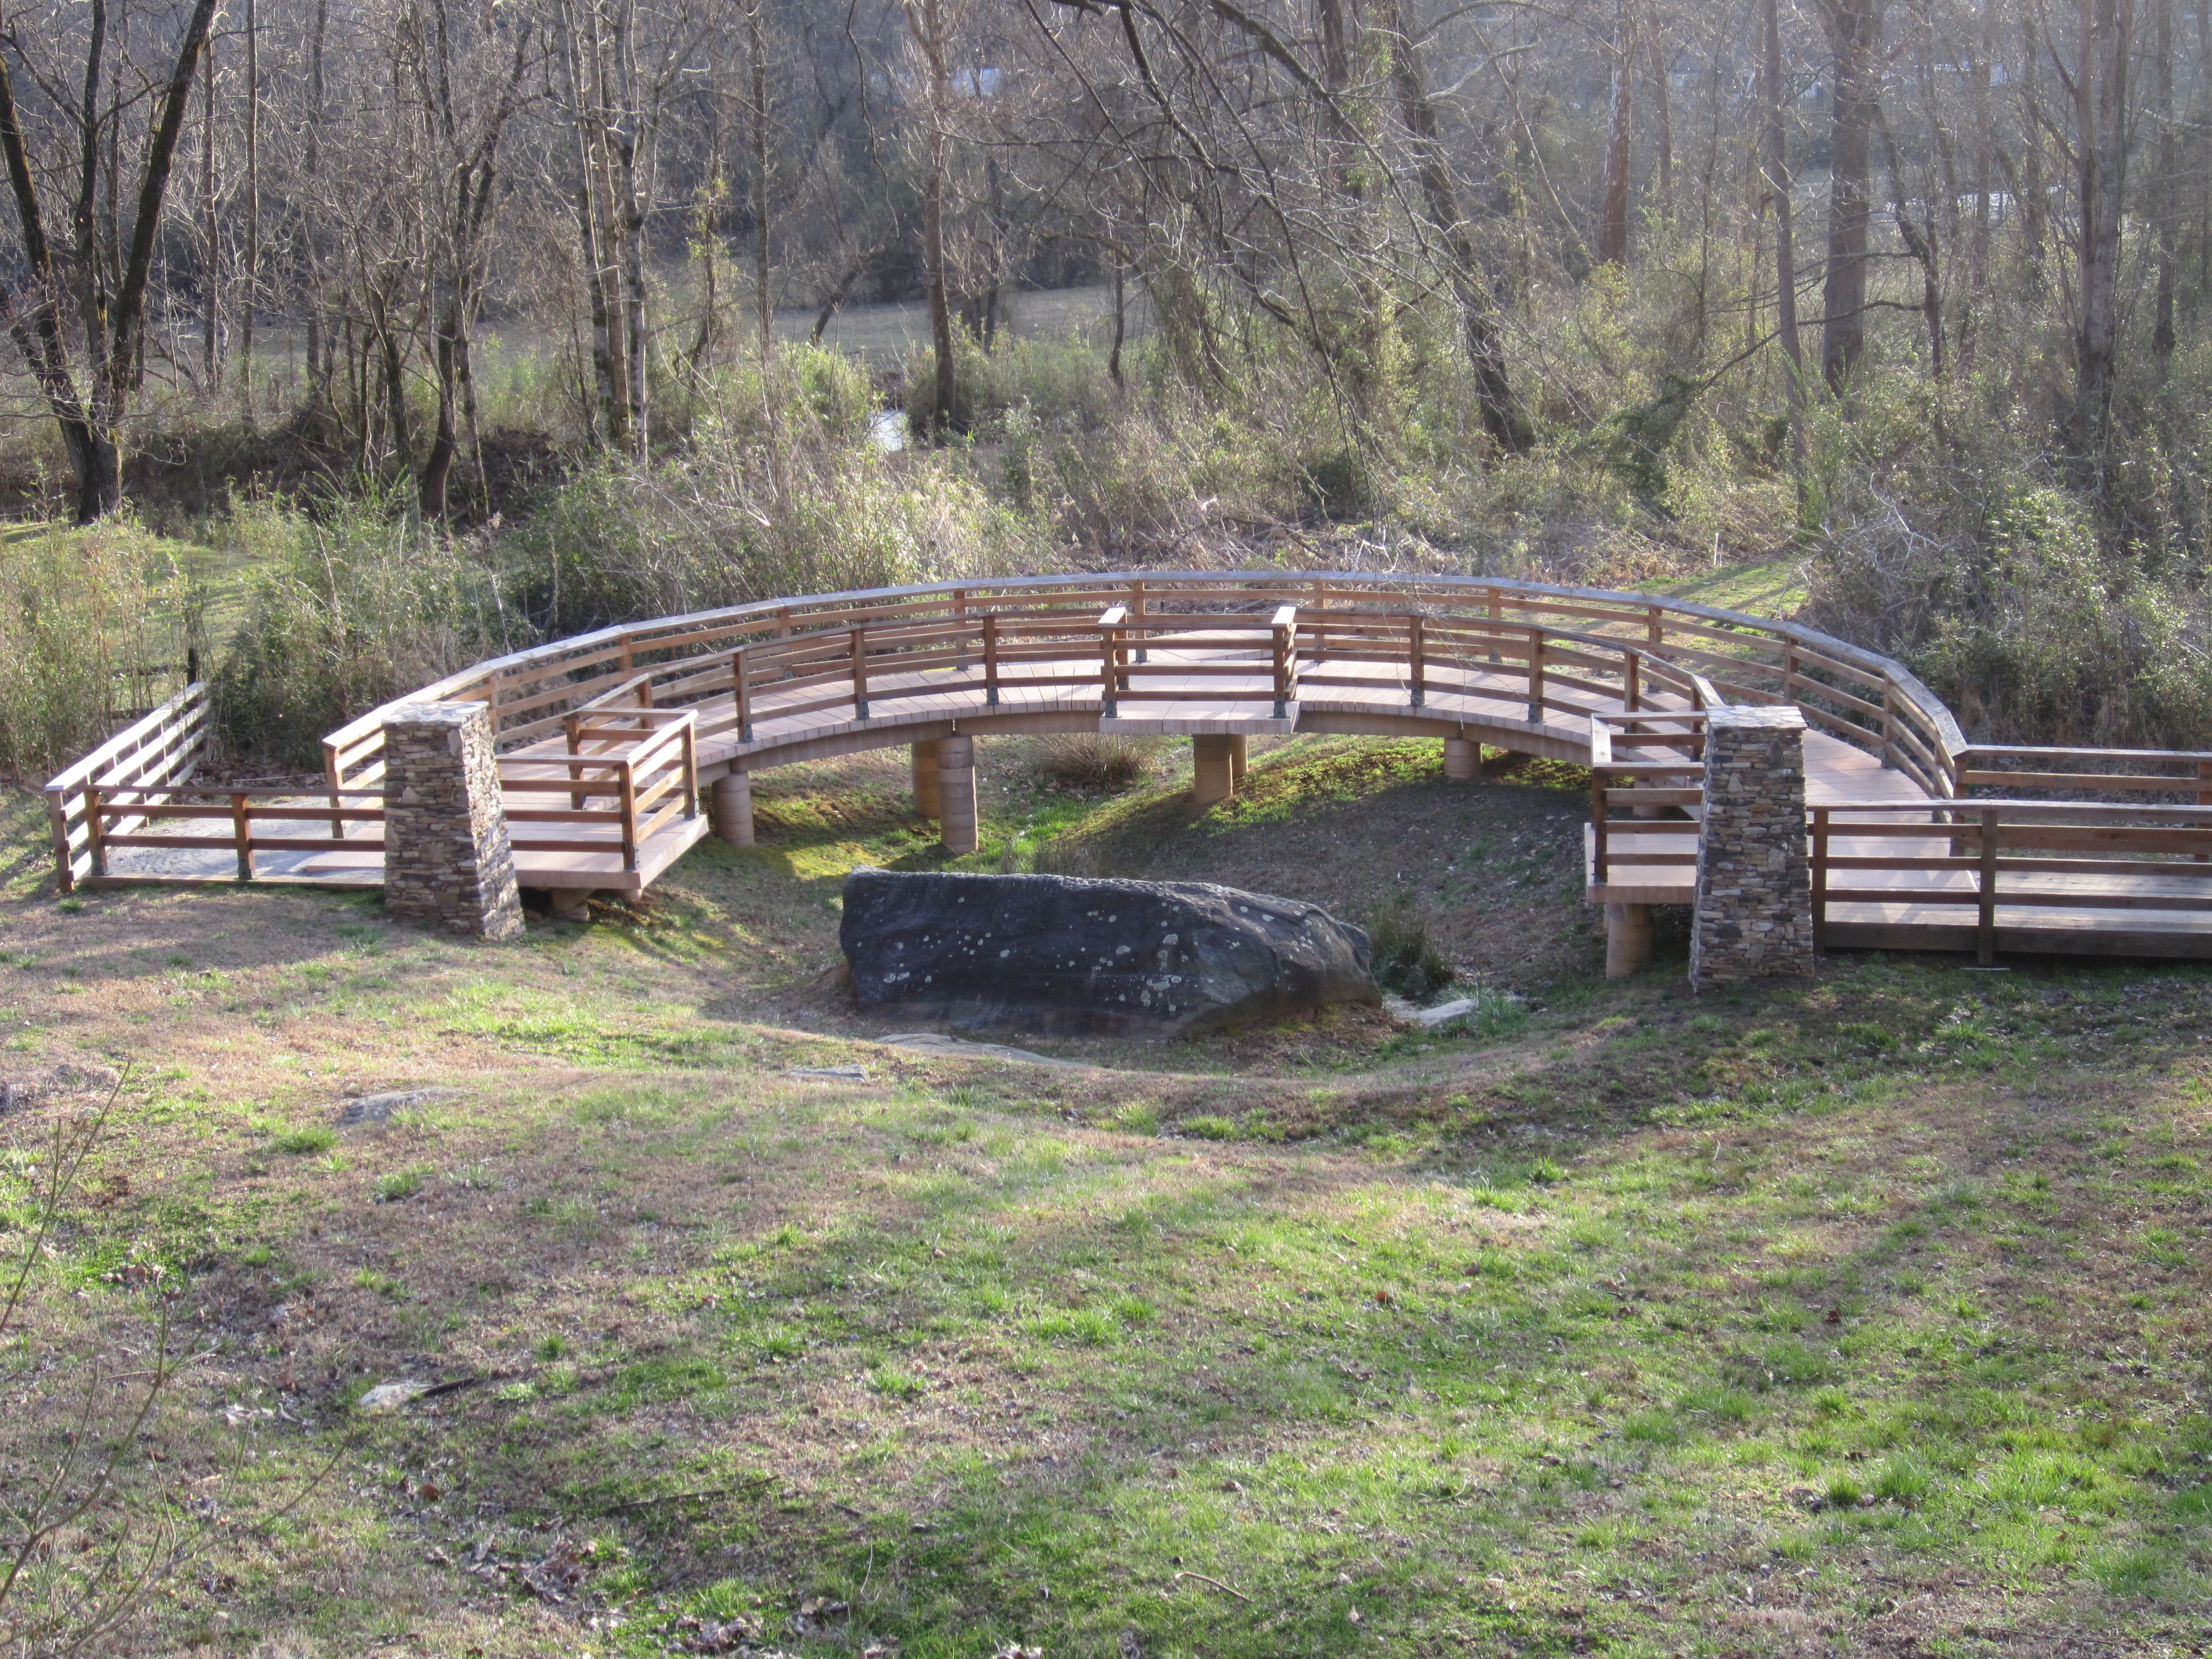 The site features a wooden walkway around the rock